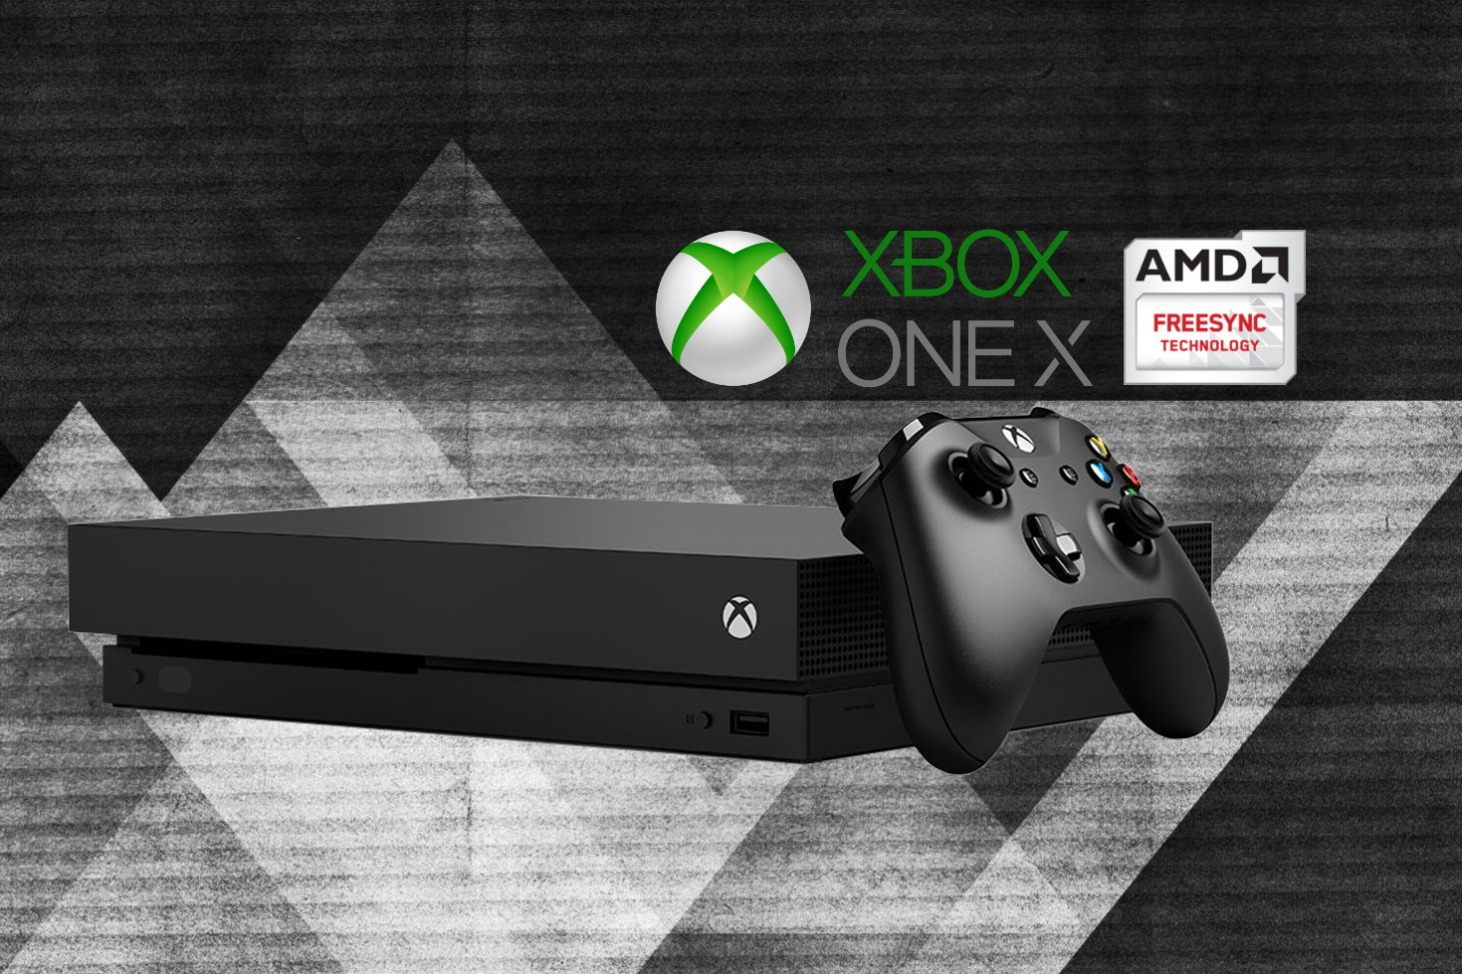 Microsoft announces that AMD Radeon FreeSync is coming to Xbox One X